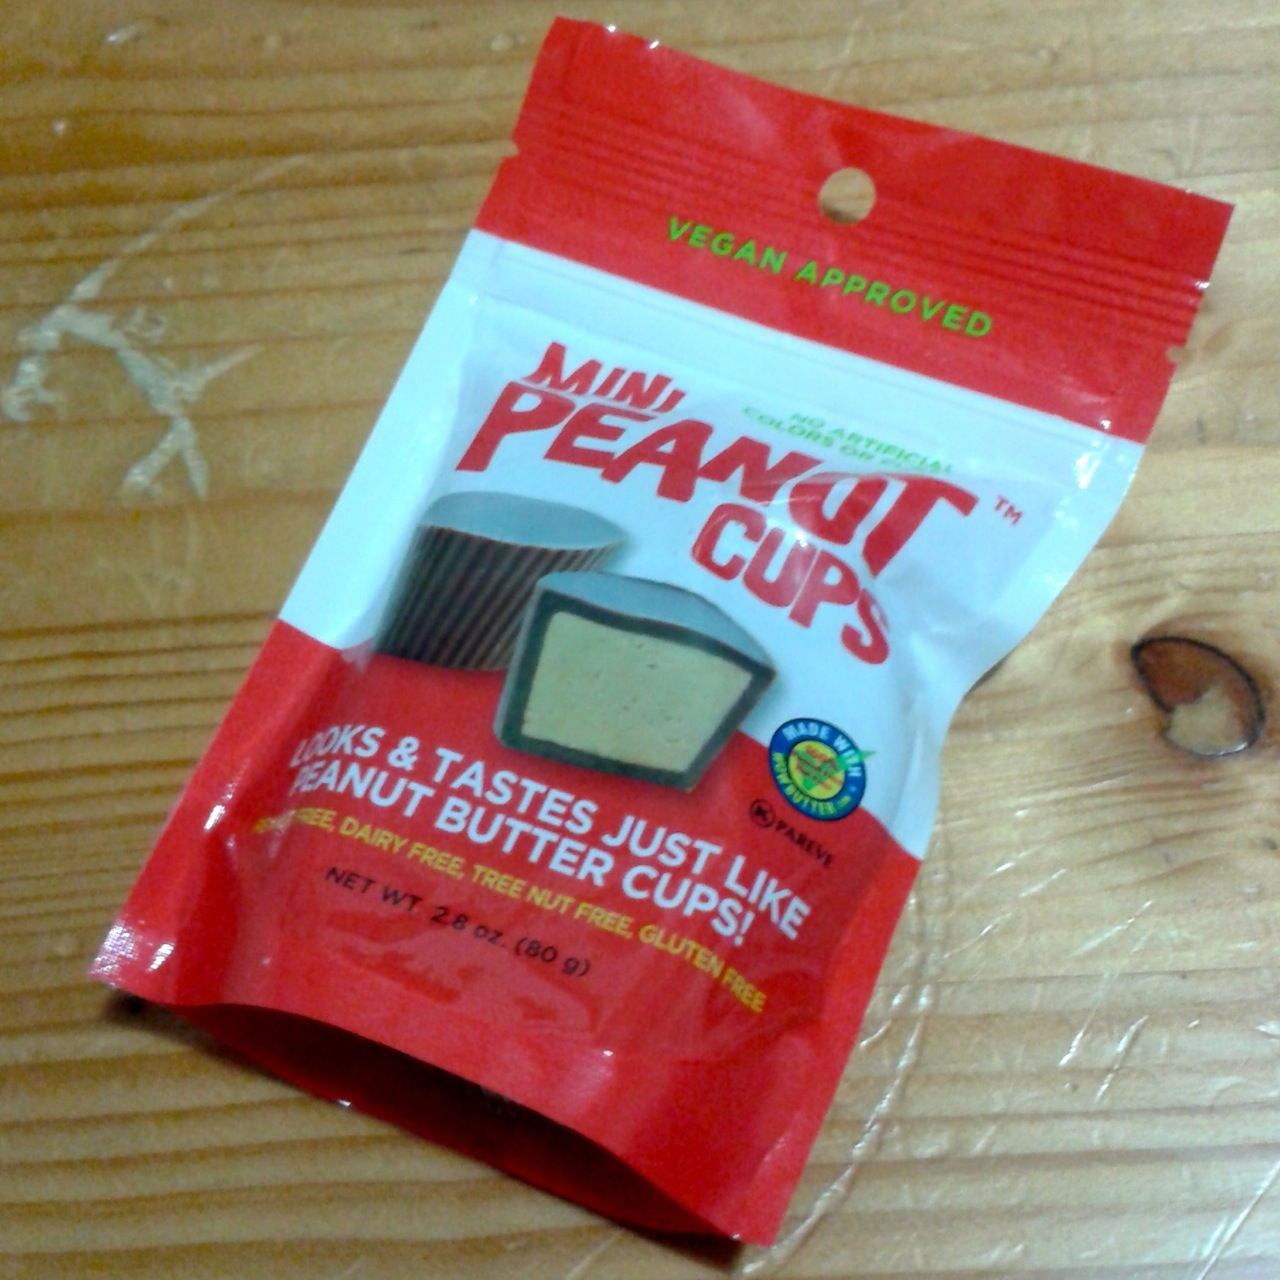 http://i0.wp.com/fatgayvegan.com/wp-content/uploads/2014/10/mini-peanot-cups.jpg?fit=1280%2C1280